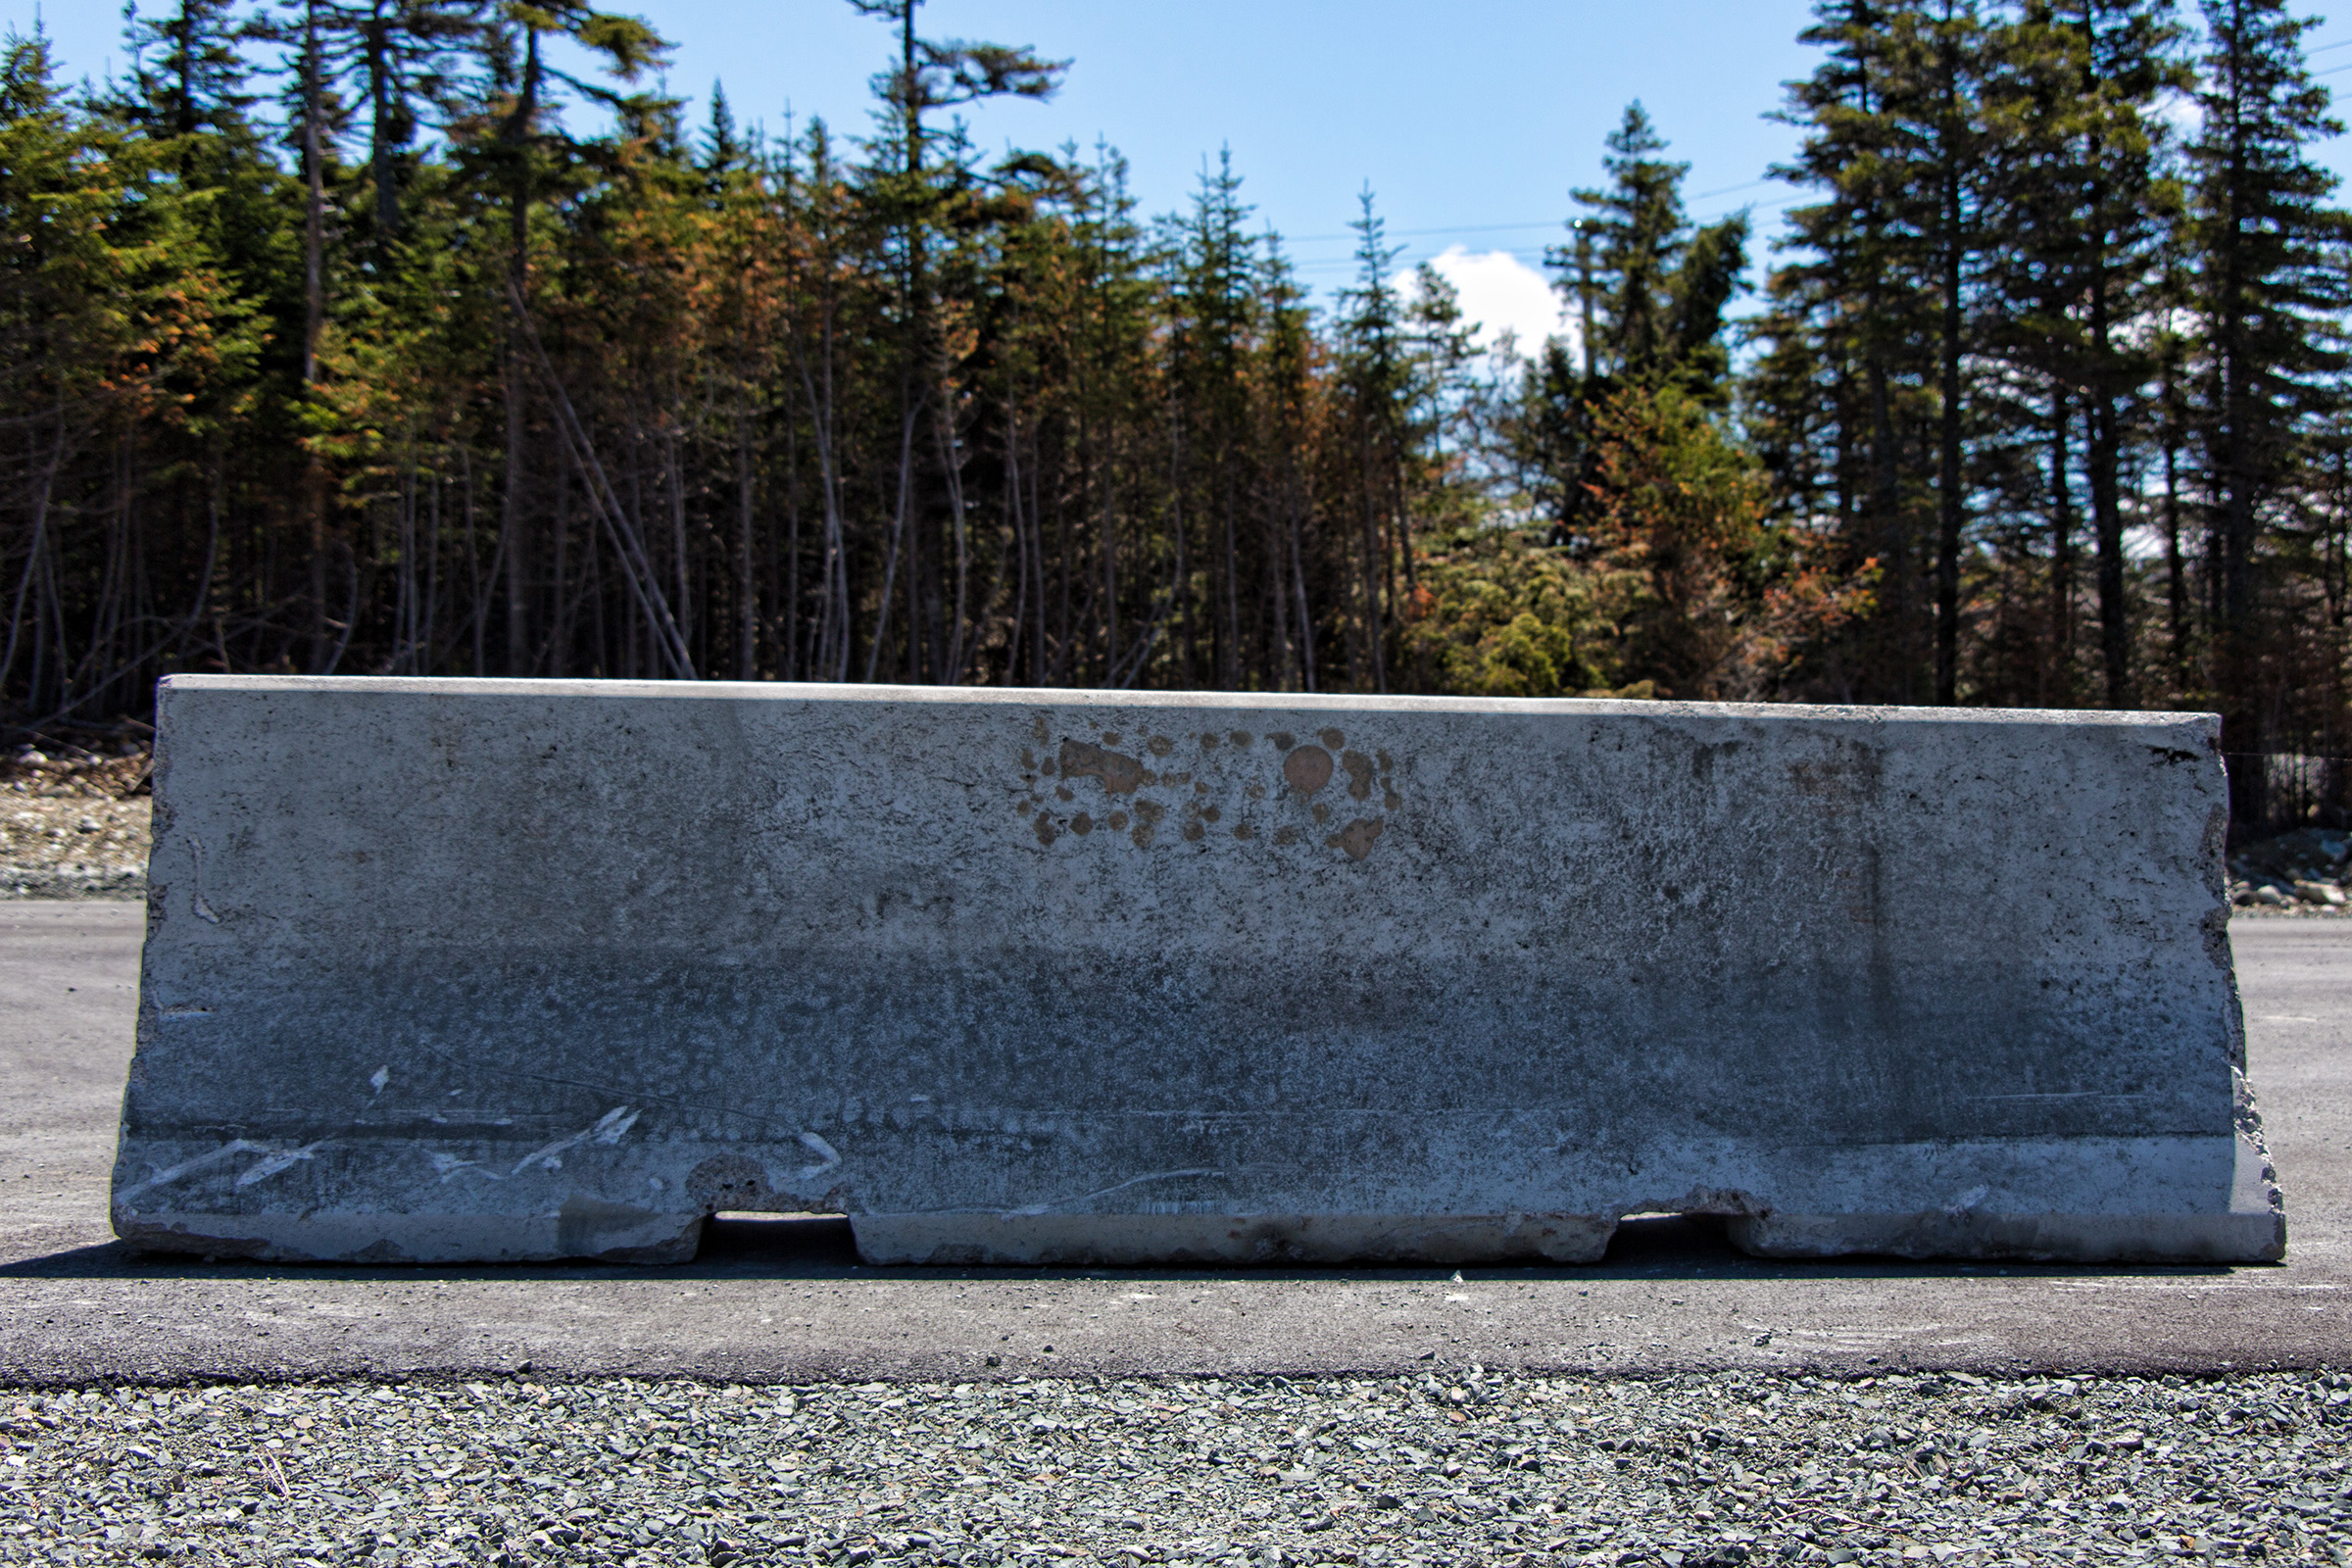 Road barrier photo